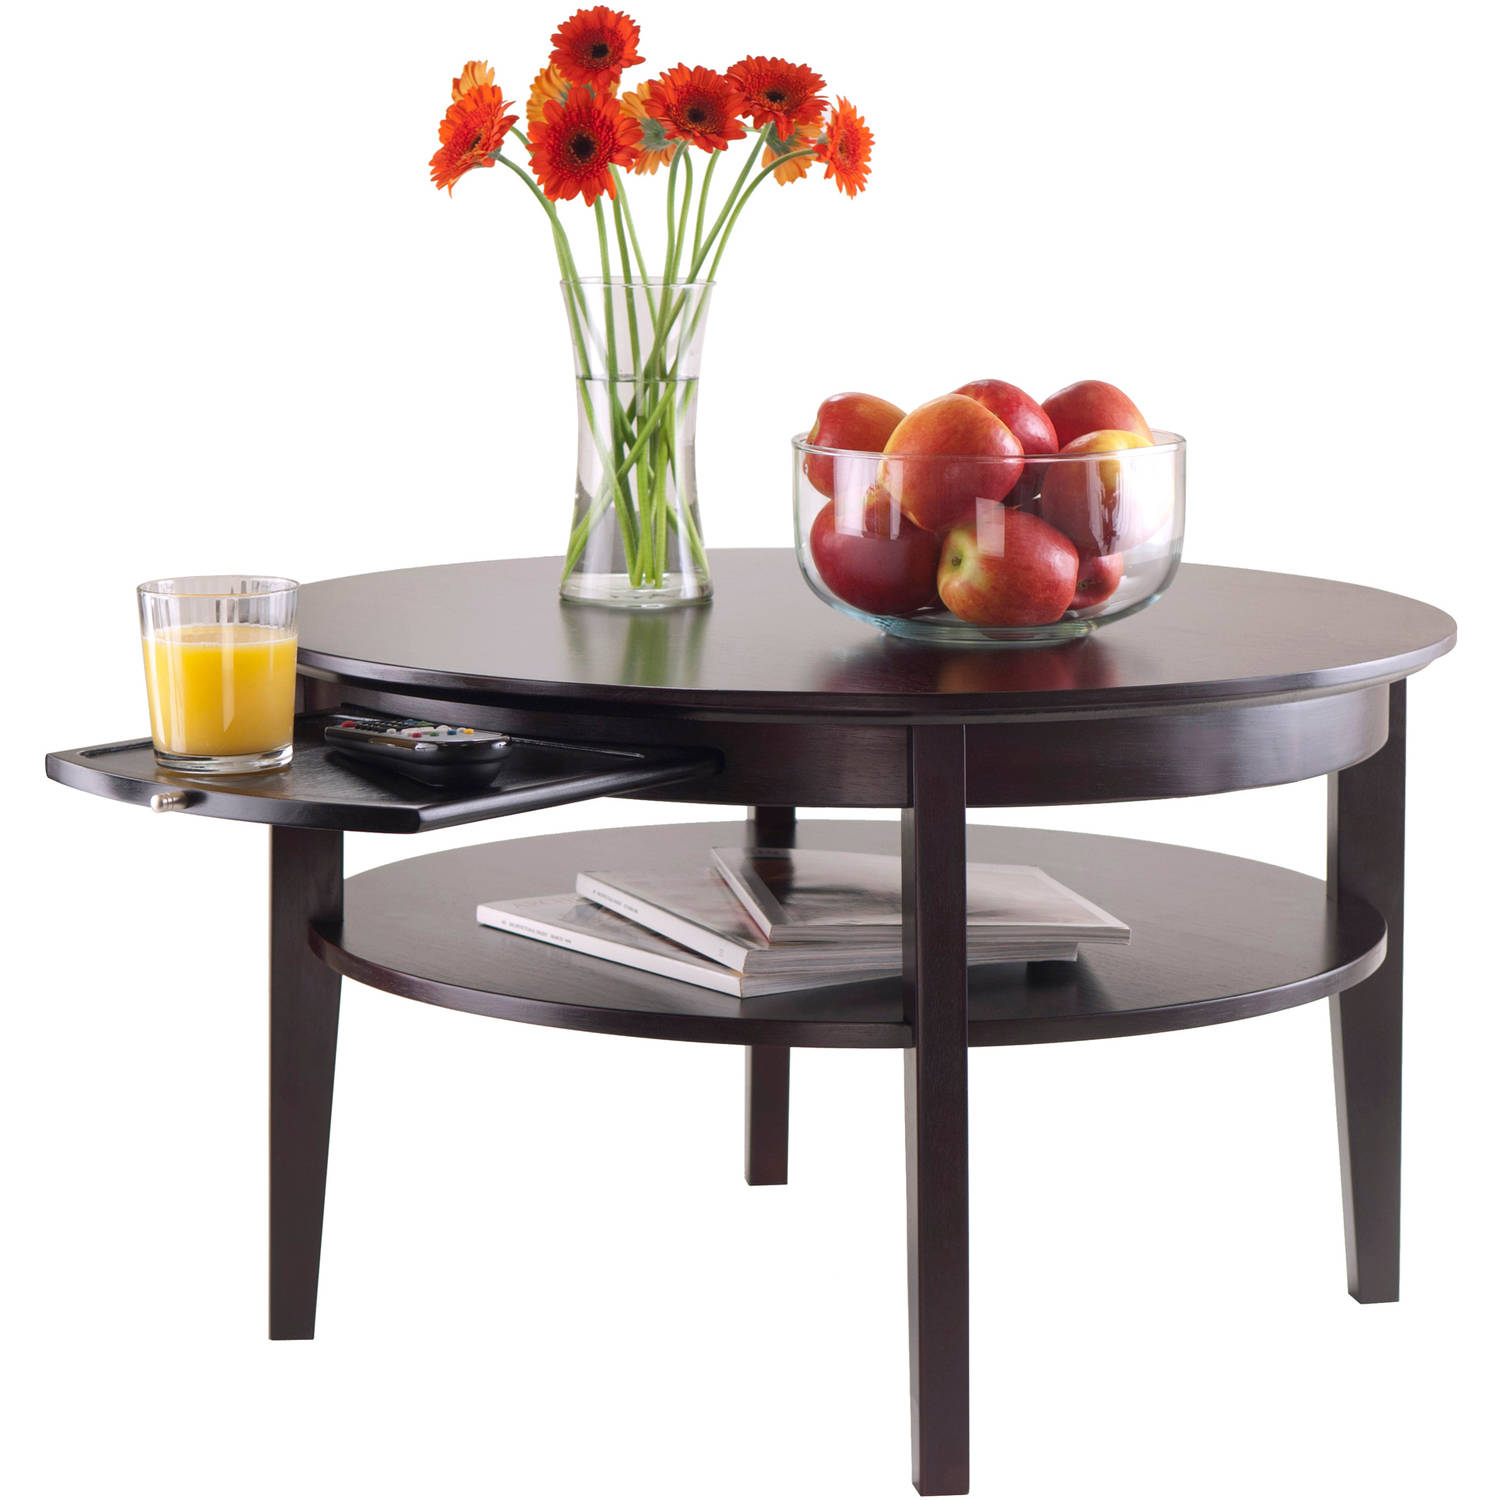 Winsome Wood Amelia Round Coffee Table With Pull Out Tray Espresso Finish